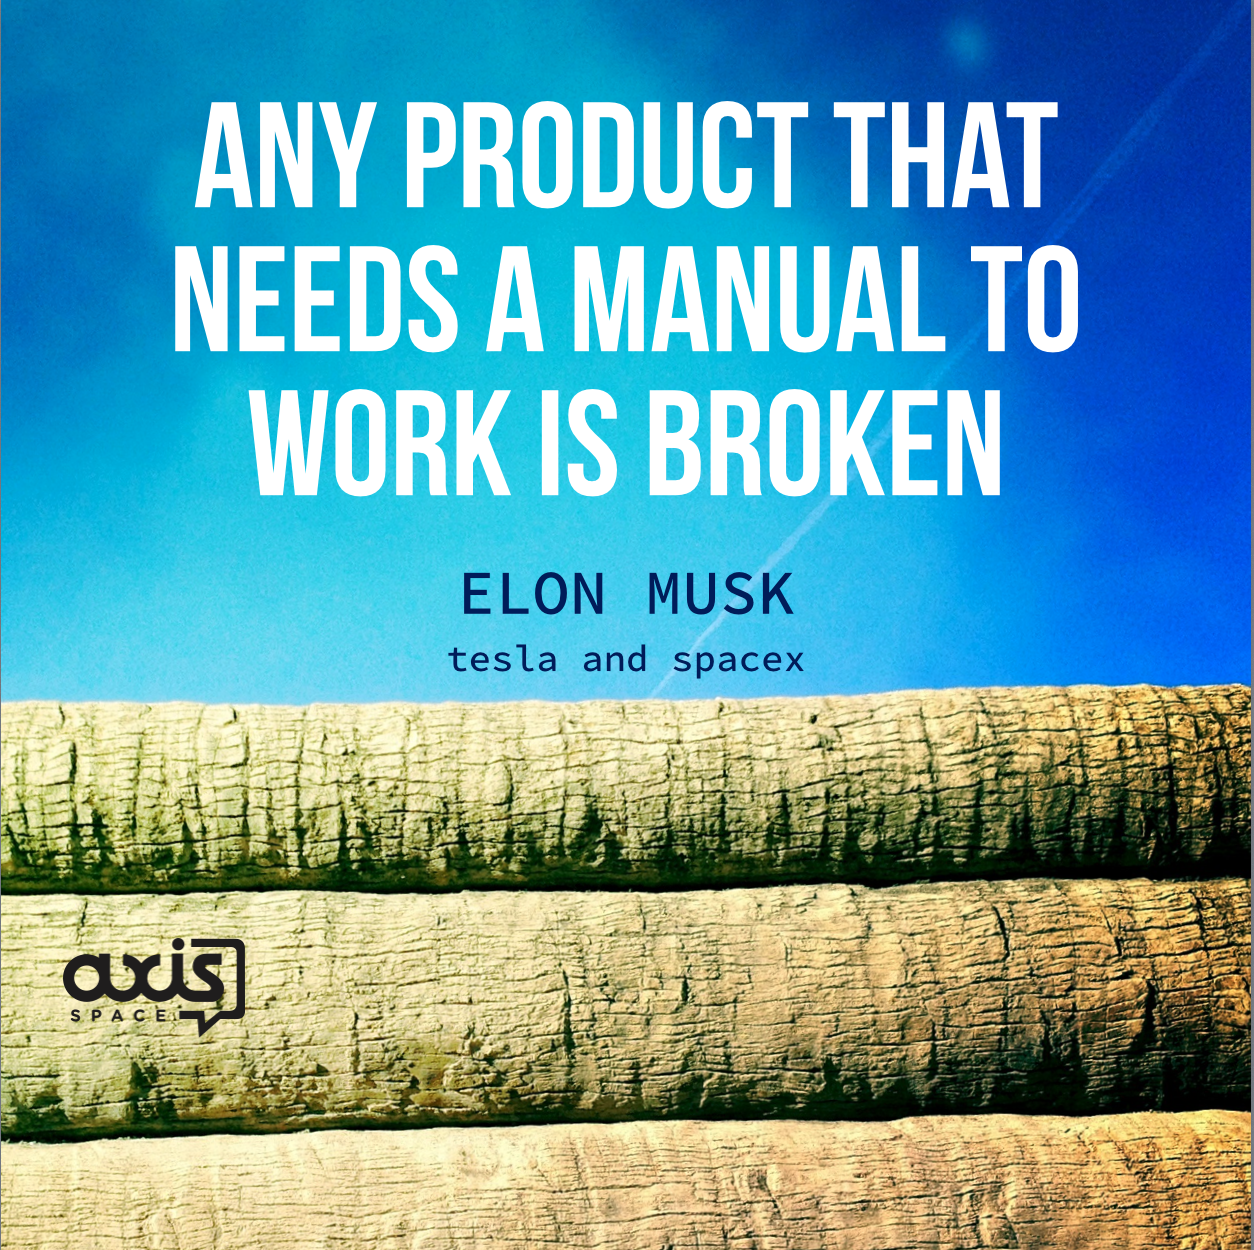 Axis-Office-Space-Quotes-Elon-Musk